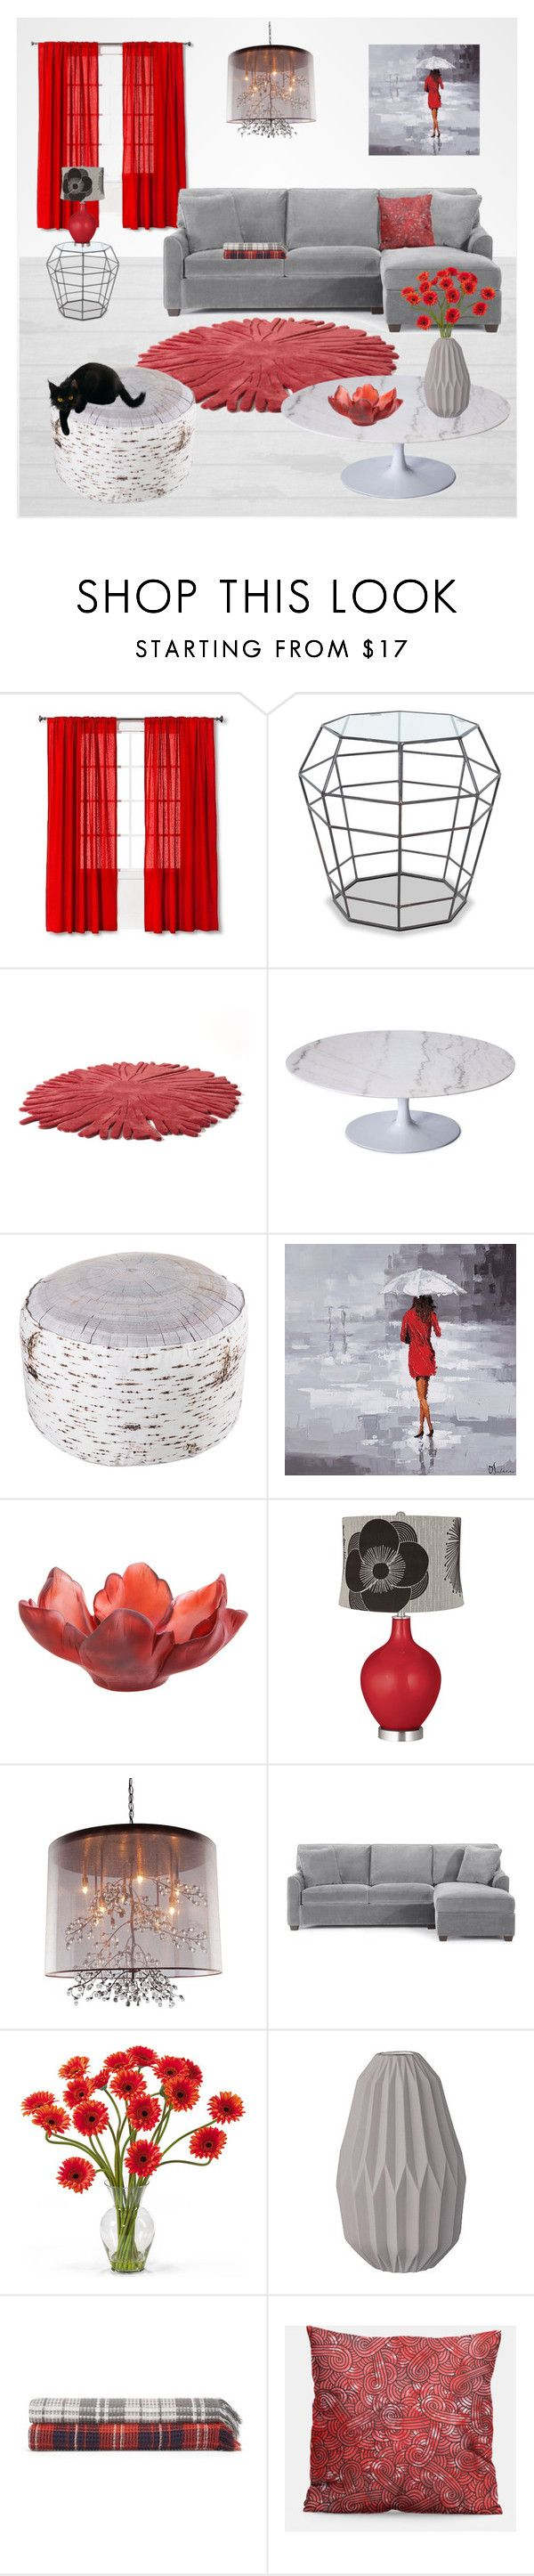 Grey & Red living room set by @savousepate on Polyvore